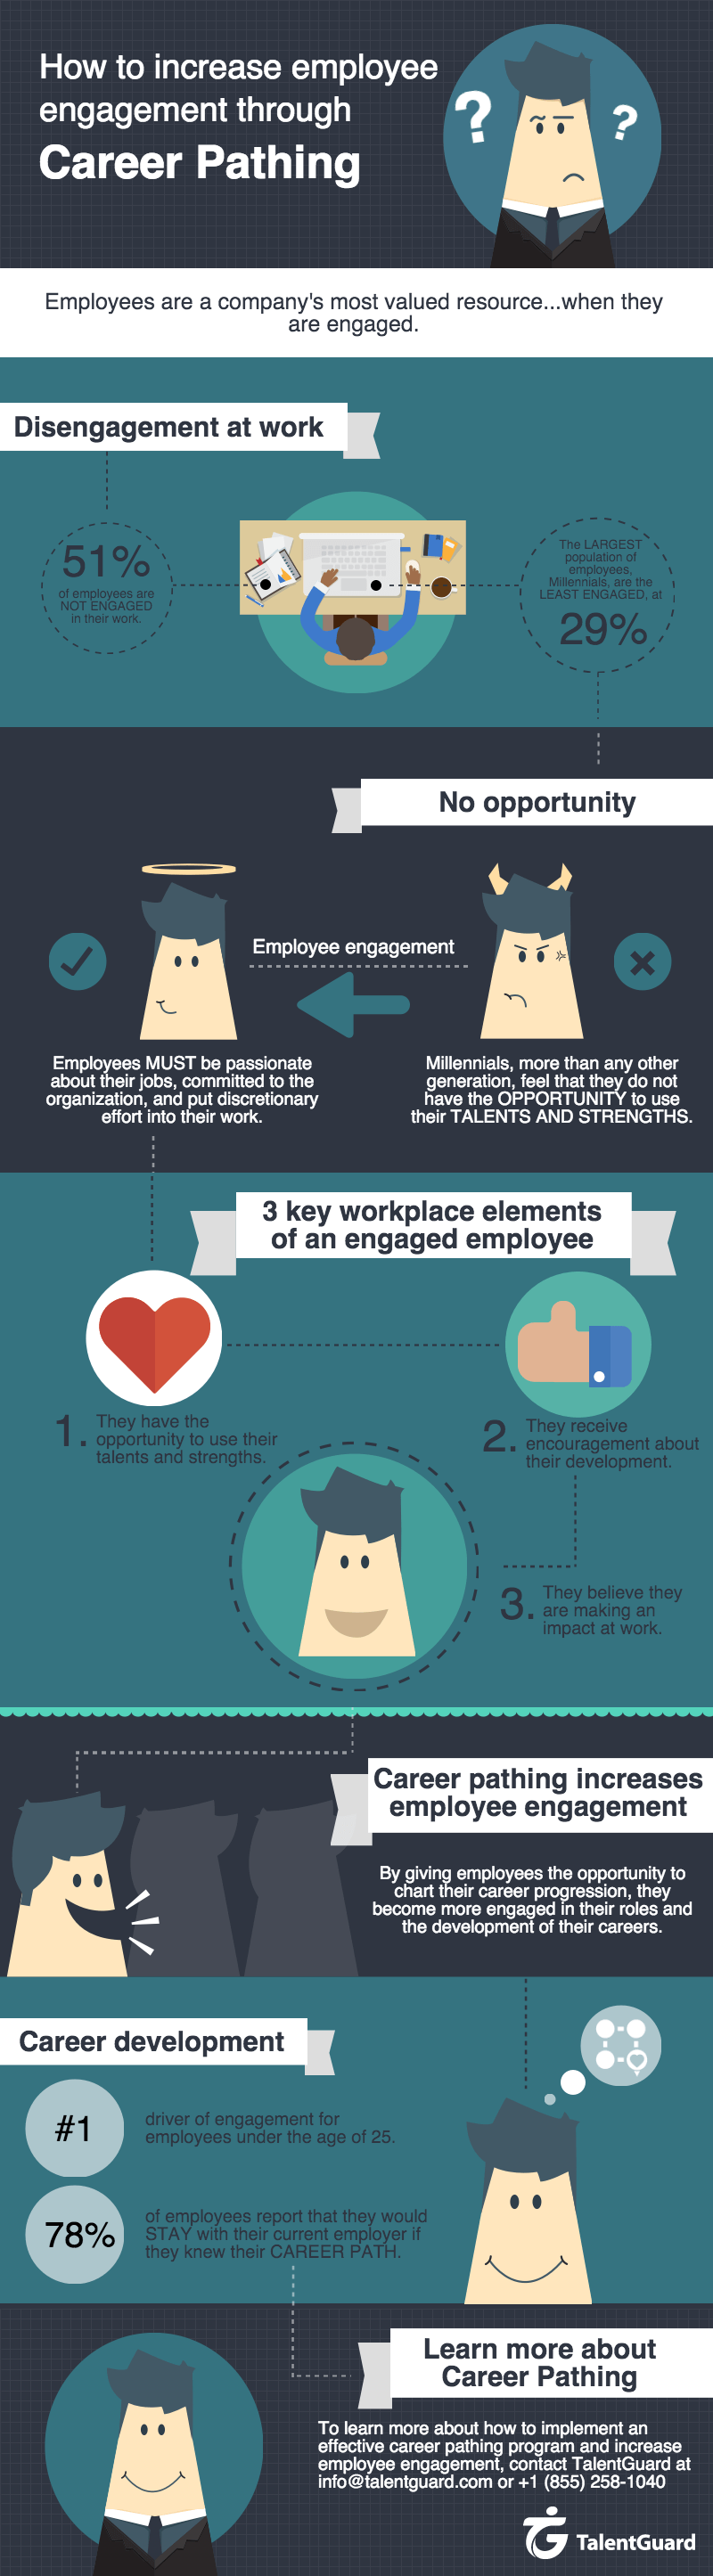 Career Pathing Employee Engagement Infographic